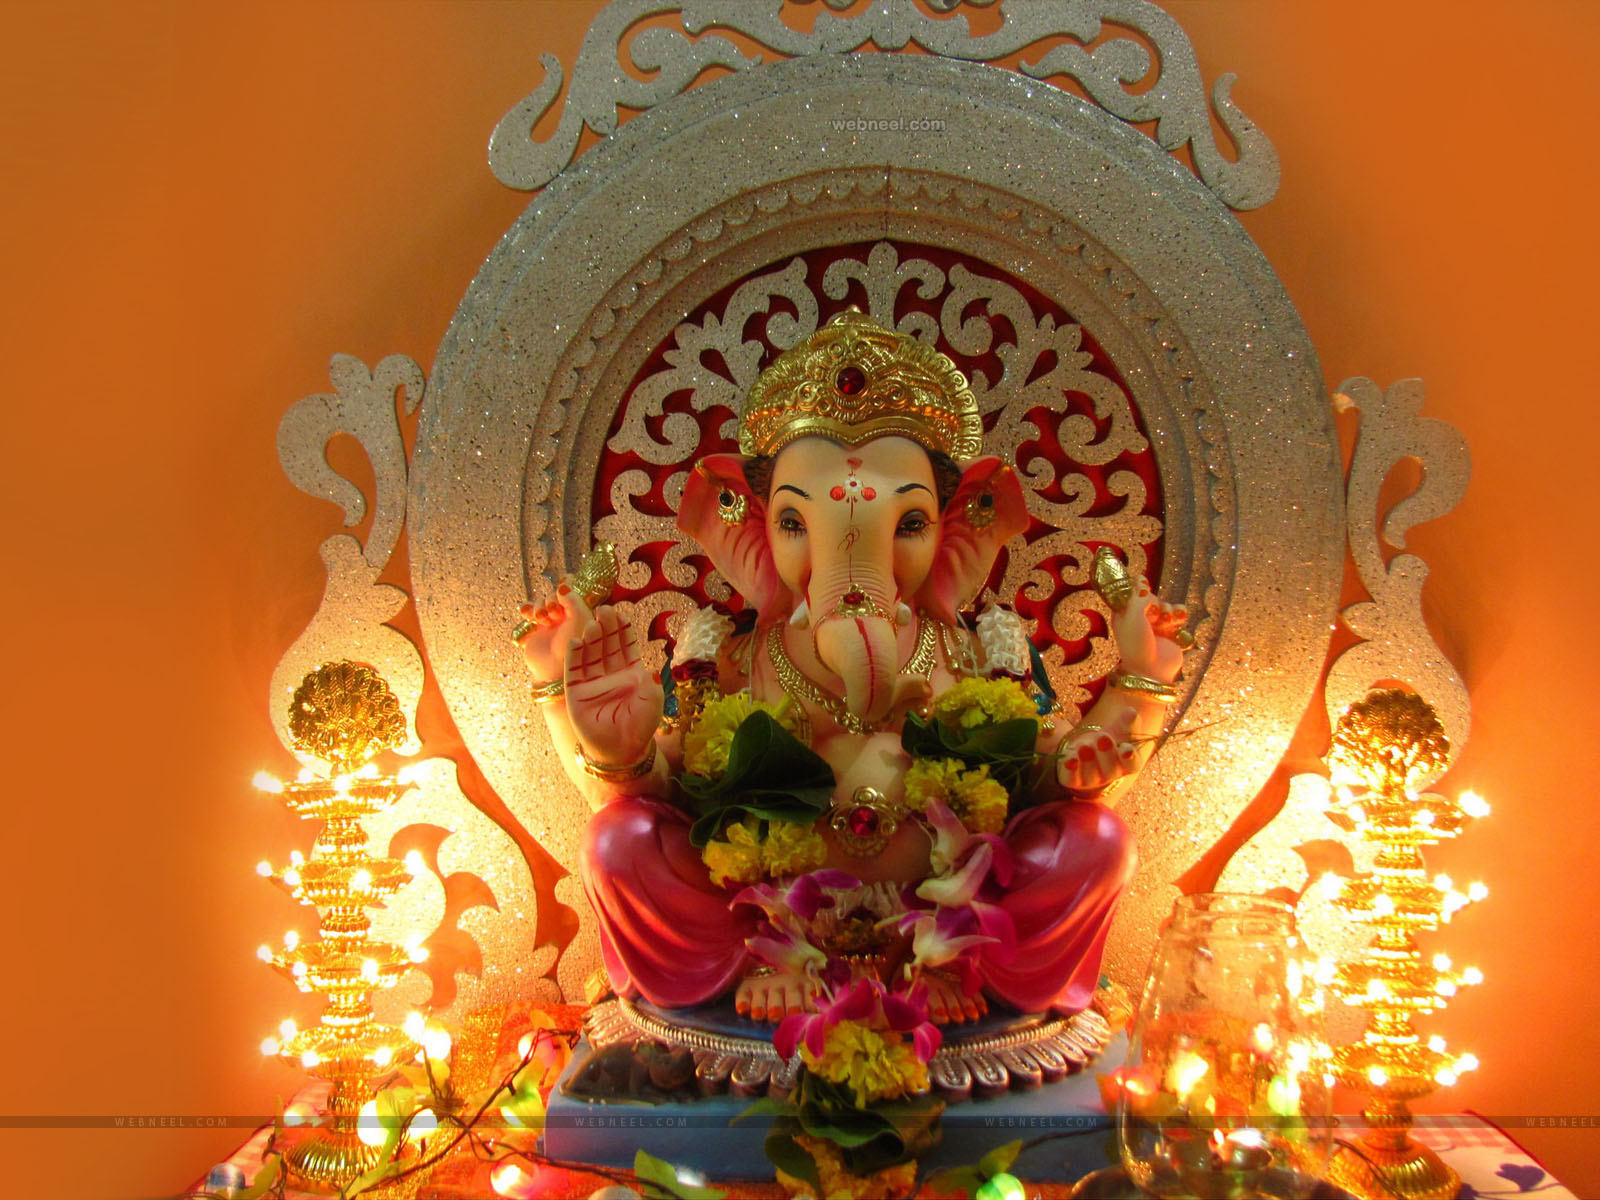 ganesh chathurthi photo raman sharma